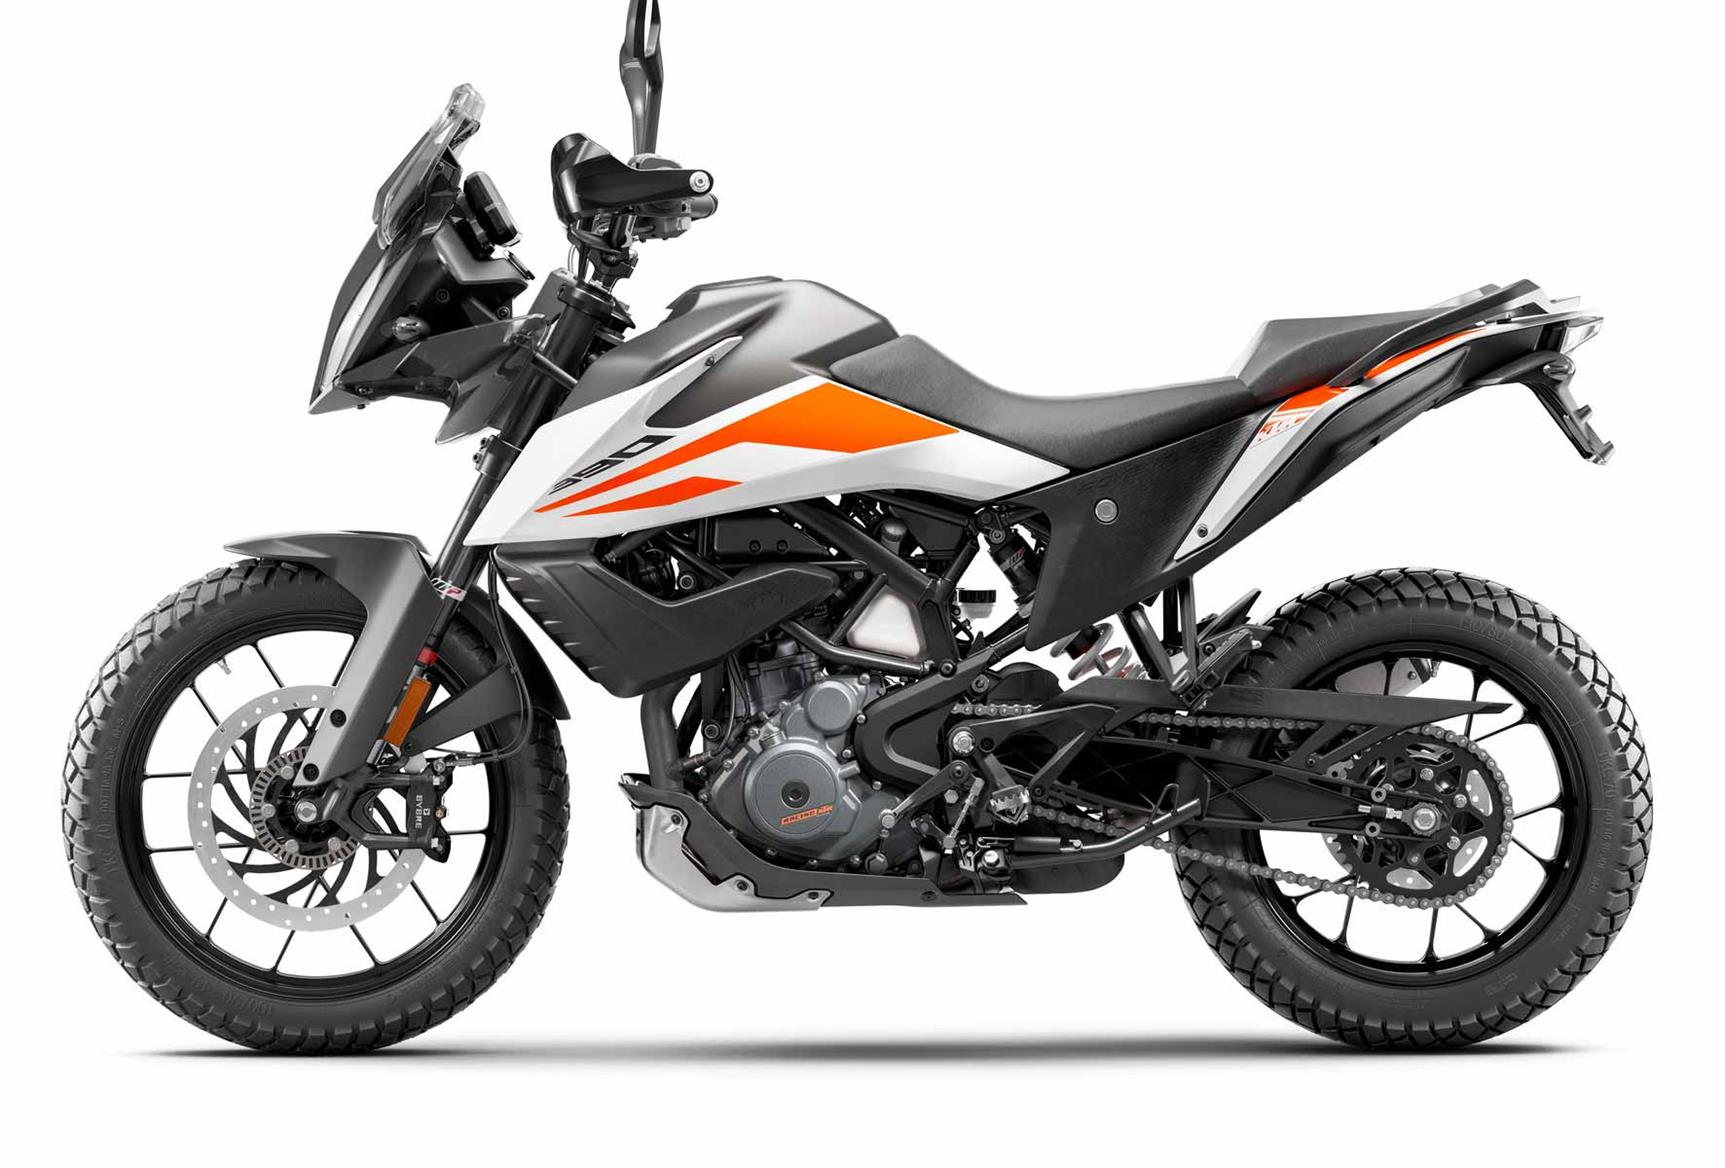 A side view of the KTM 390 Adventure